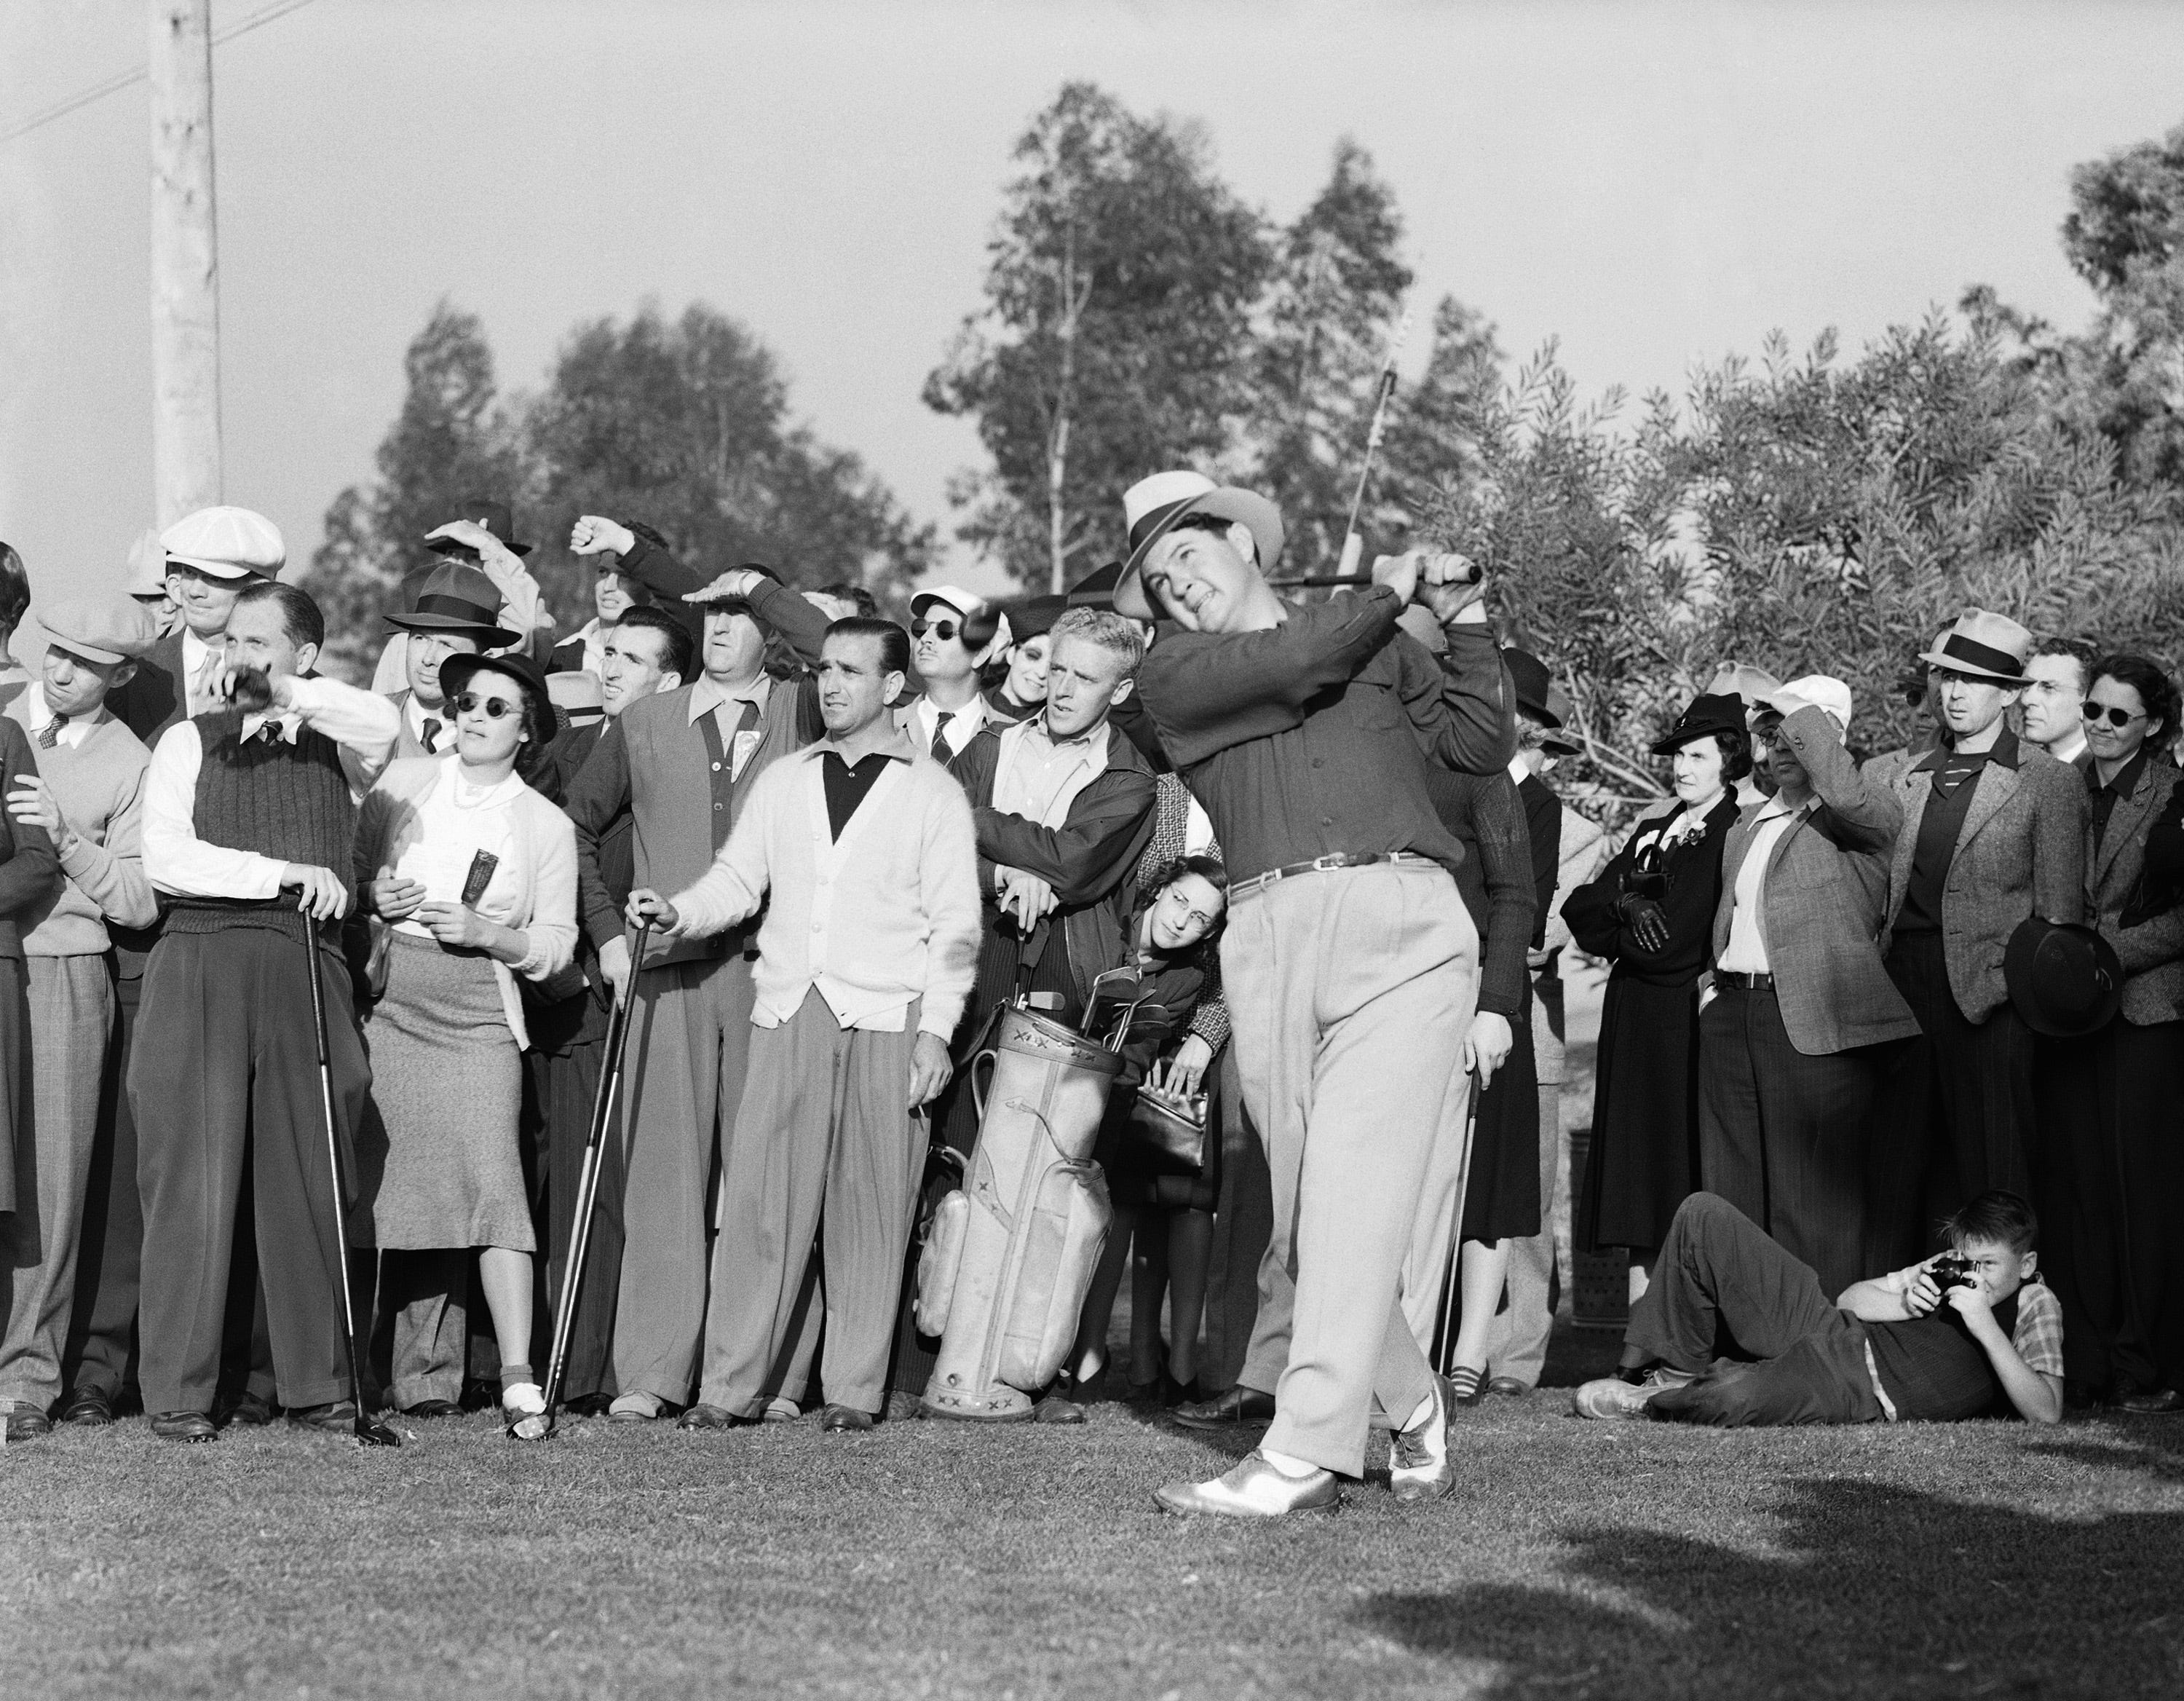 """Ed """"Porky"""" Oliver on Jan.28,1940 in Hornell, N.Y., shown driving on the 18th Tee, captured his first major golf prize by winning the fourth annual $3,000 Bing Crosby Golf Tournament with a 36-hole score of 68-67--135. He collected $500 top money for his 9-under-par performance."""